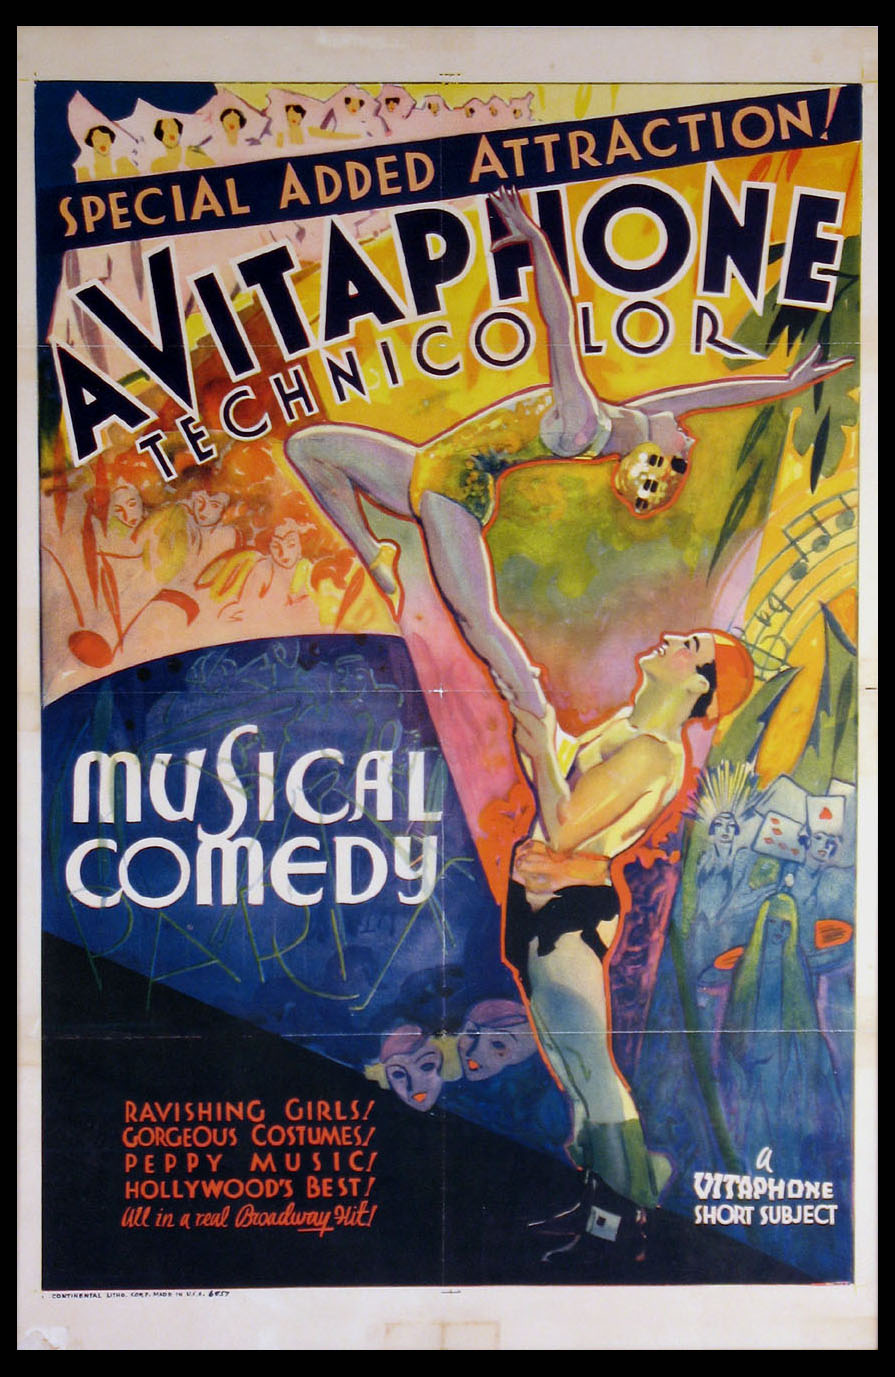 VITAPHONE MUSICAL COMEDY @ FilmPosters.com